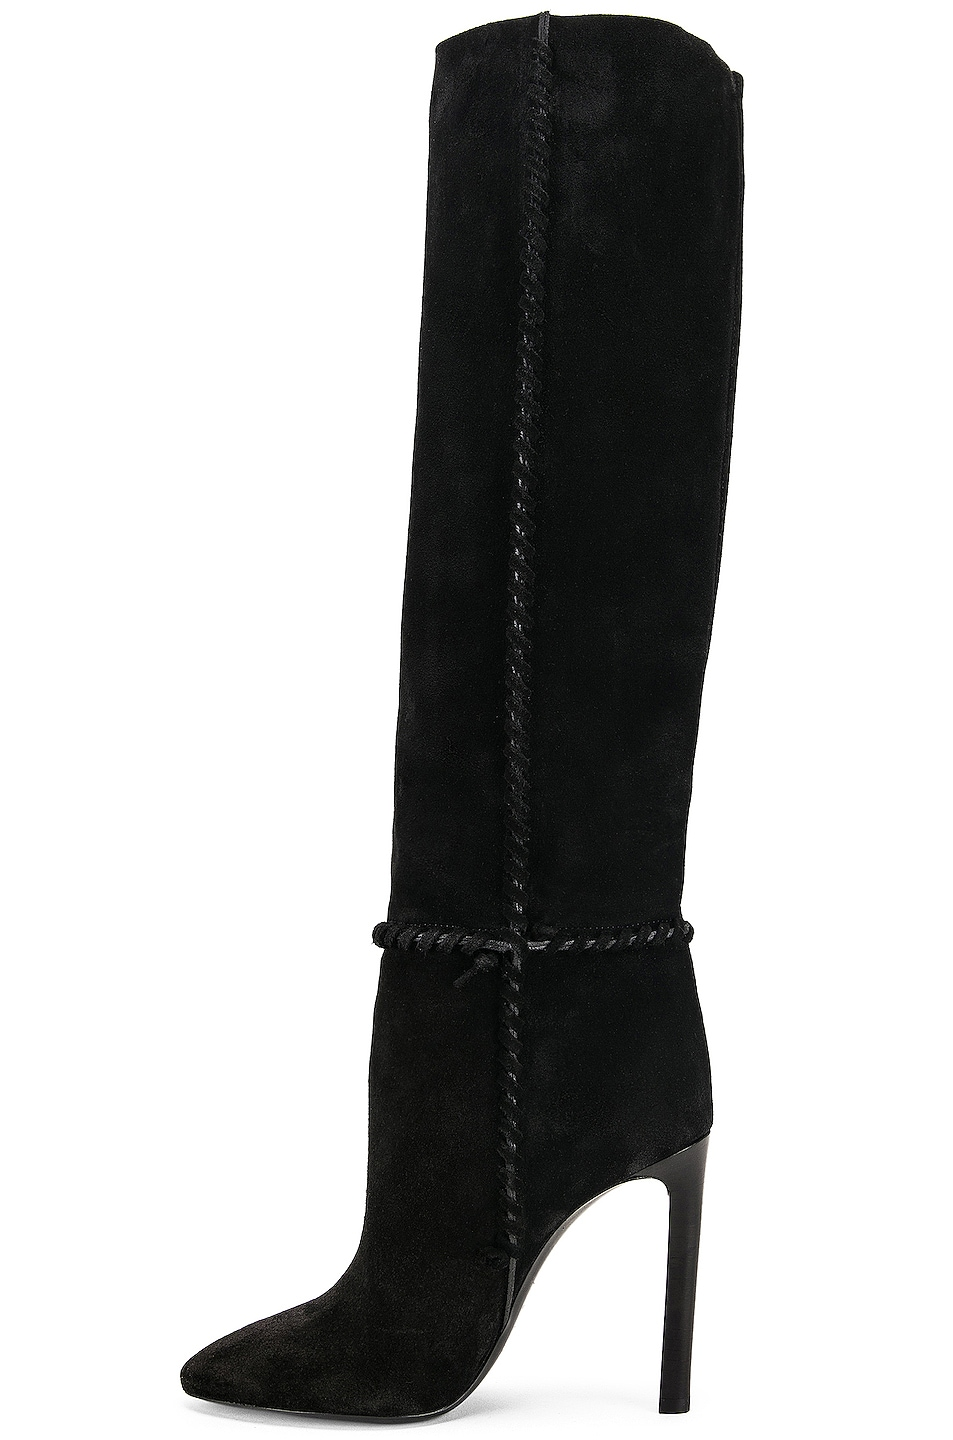 Image 5 of Saint Laurent Mica Boots in Black